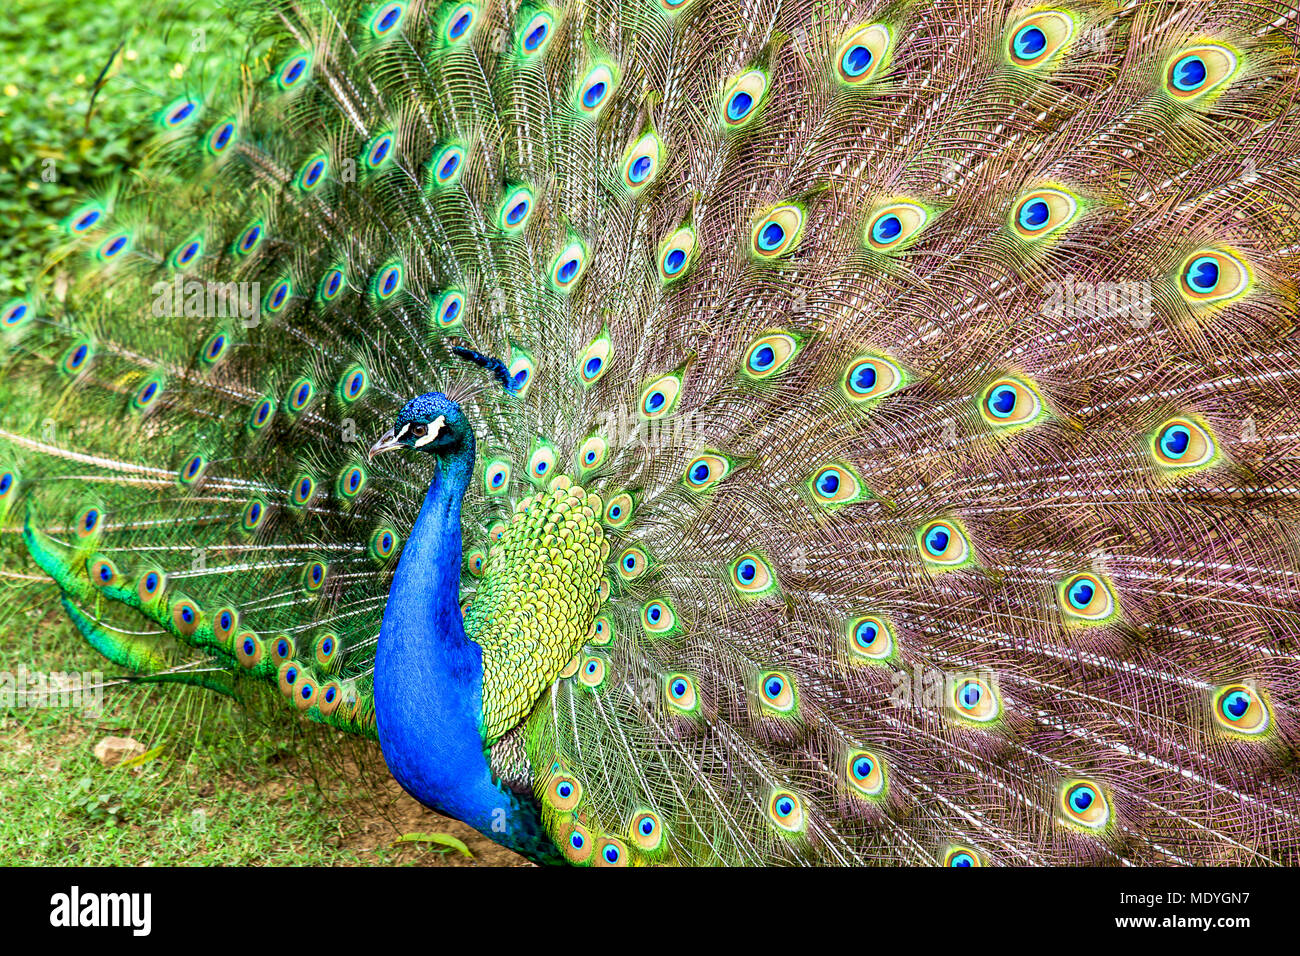 The beautiful pattern of the peacock feather display. Stock Photo